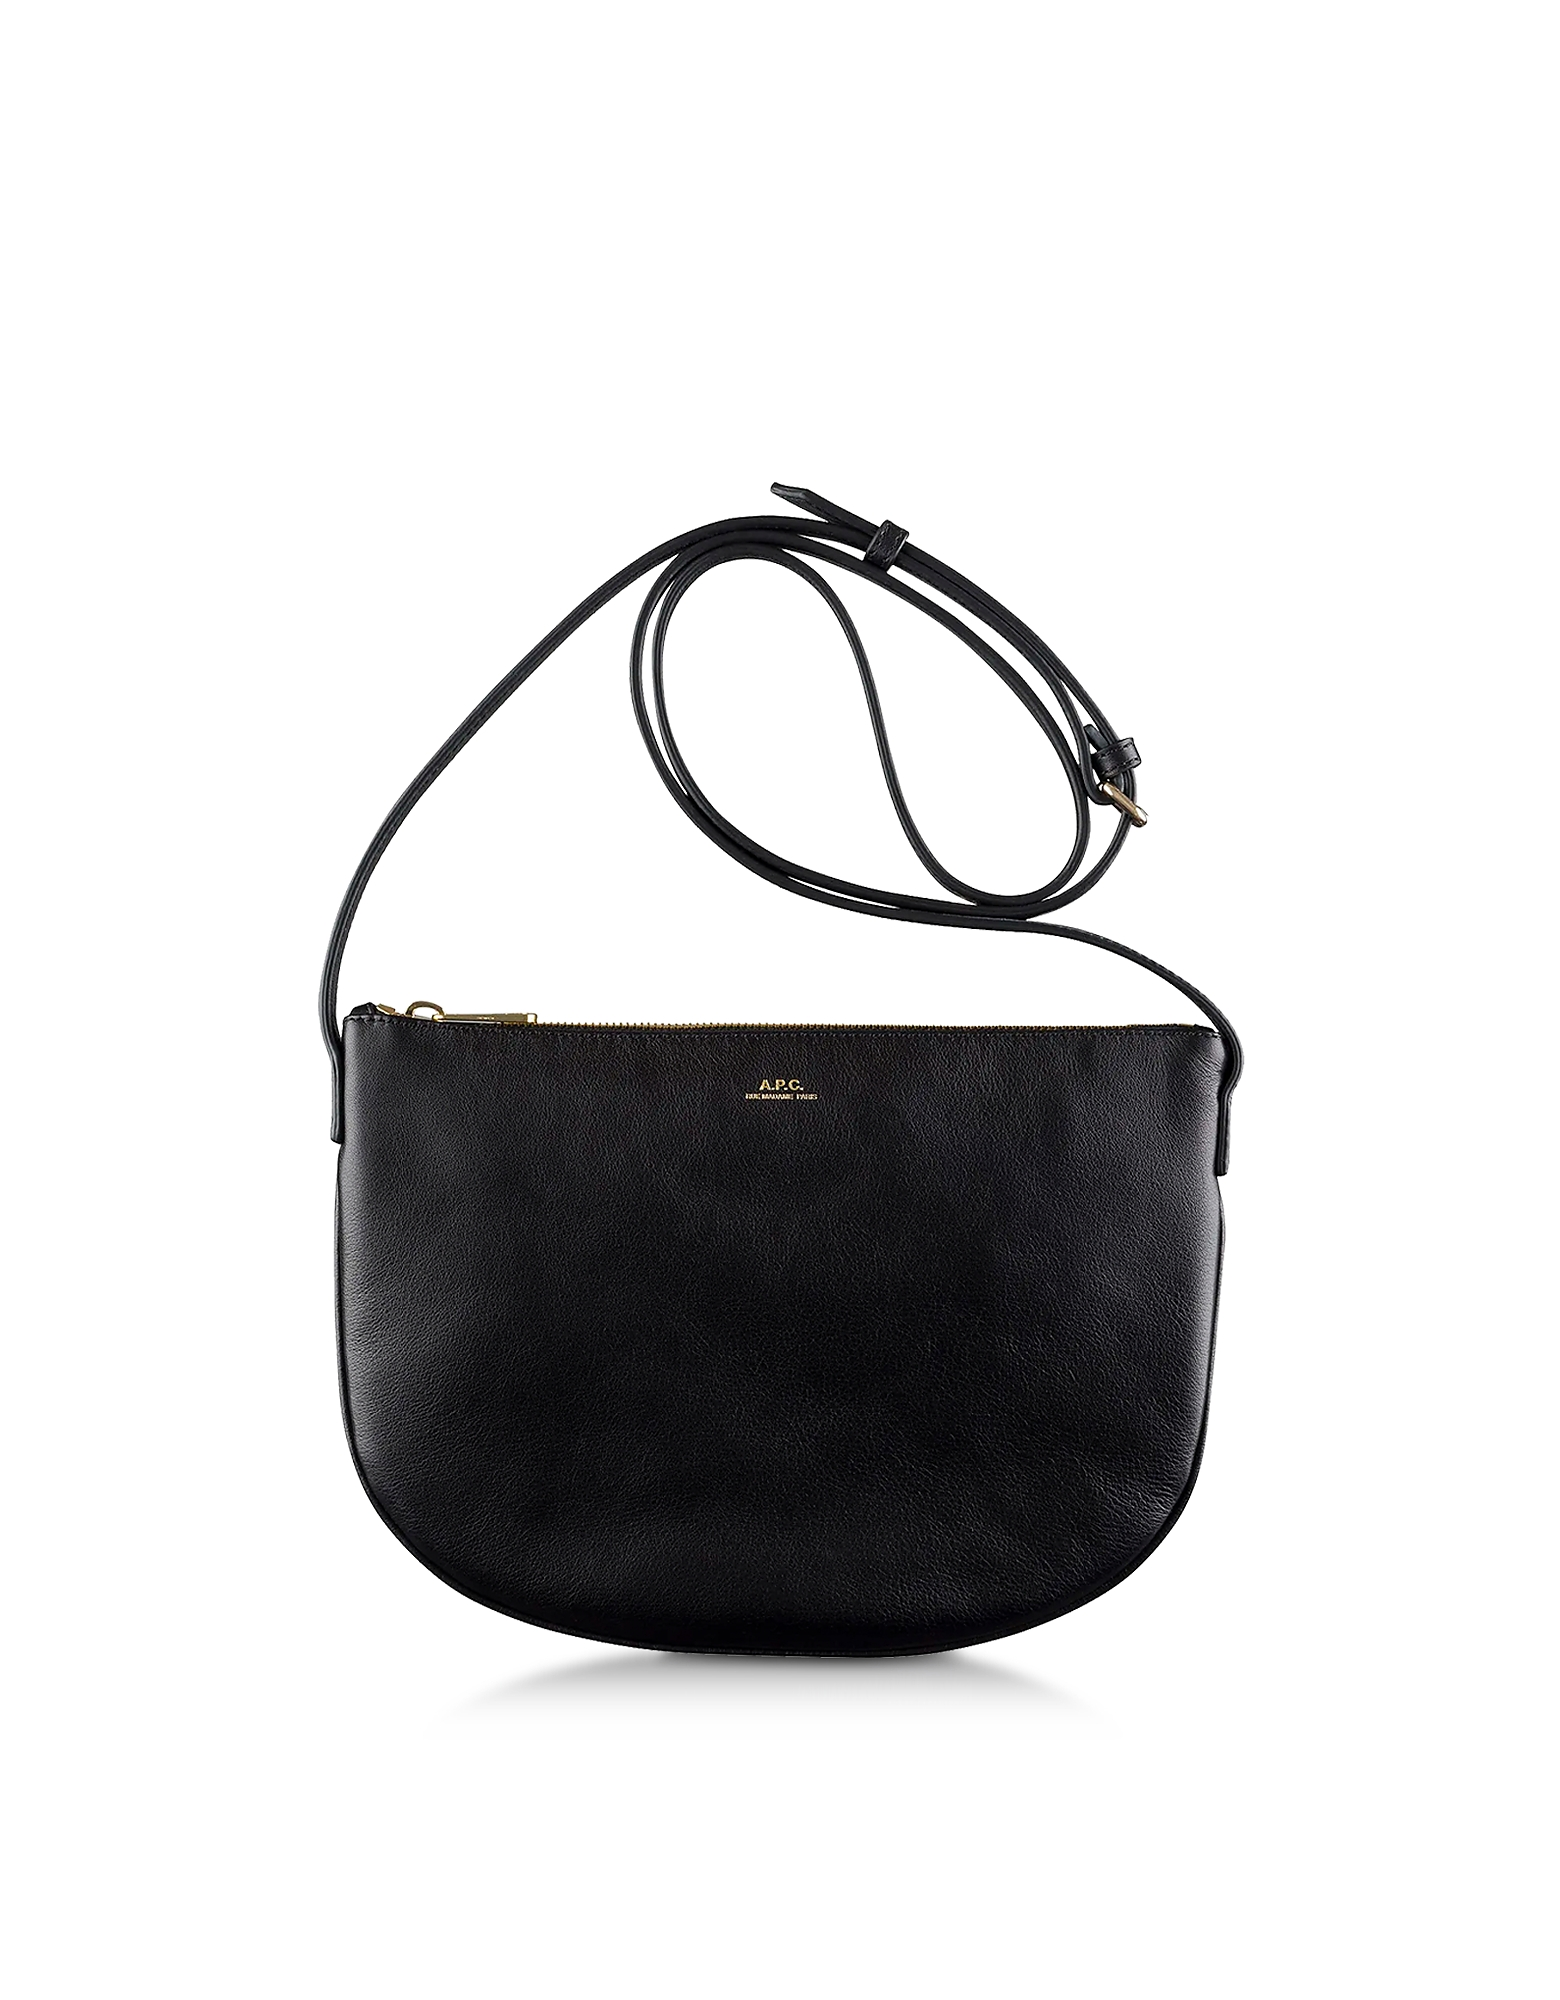 A.P.C. Designer Handbags, Maelys Leather Shoulder Bag